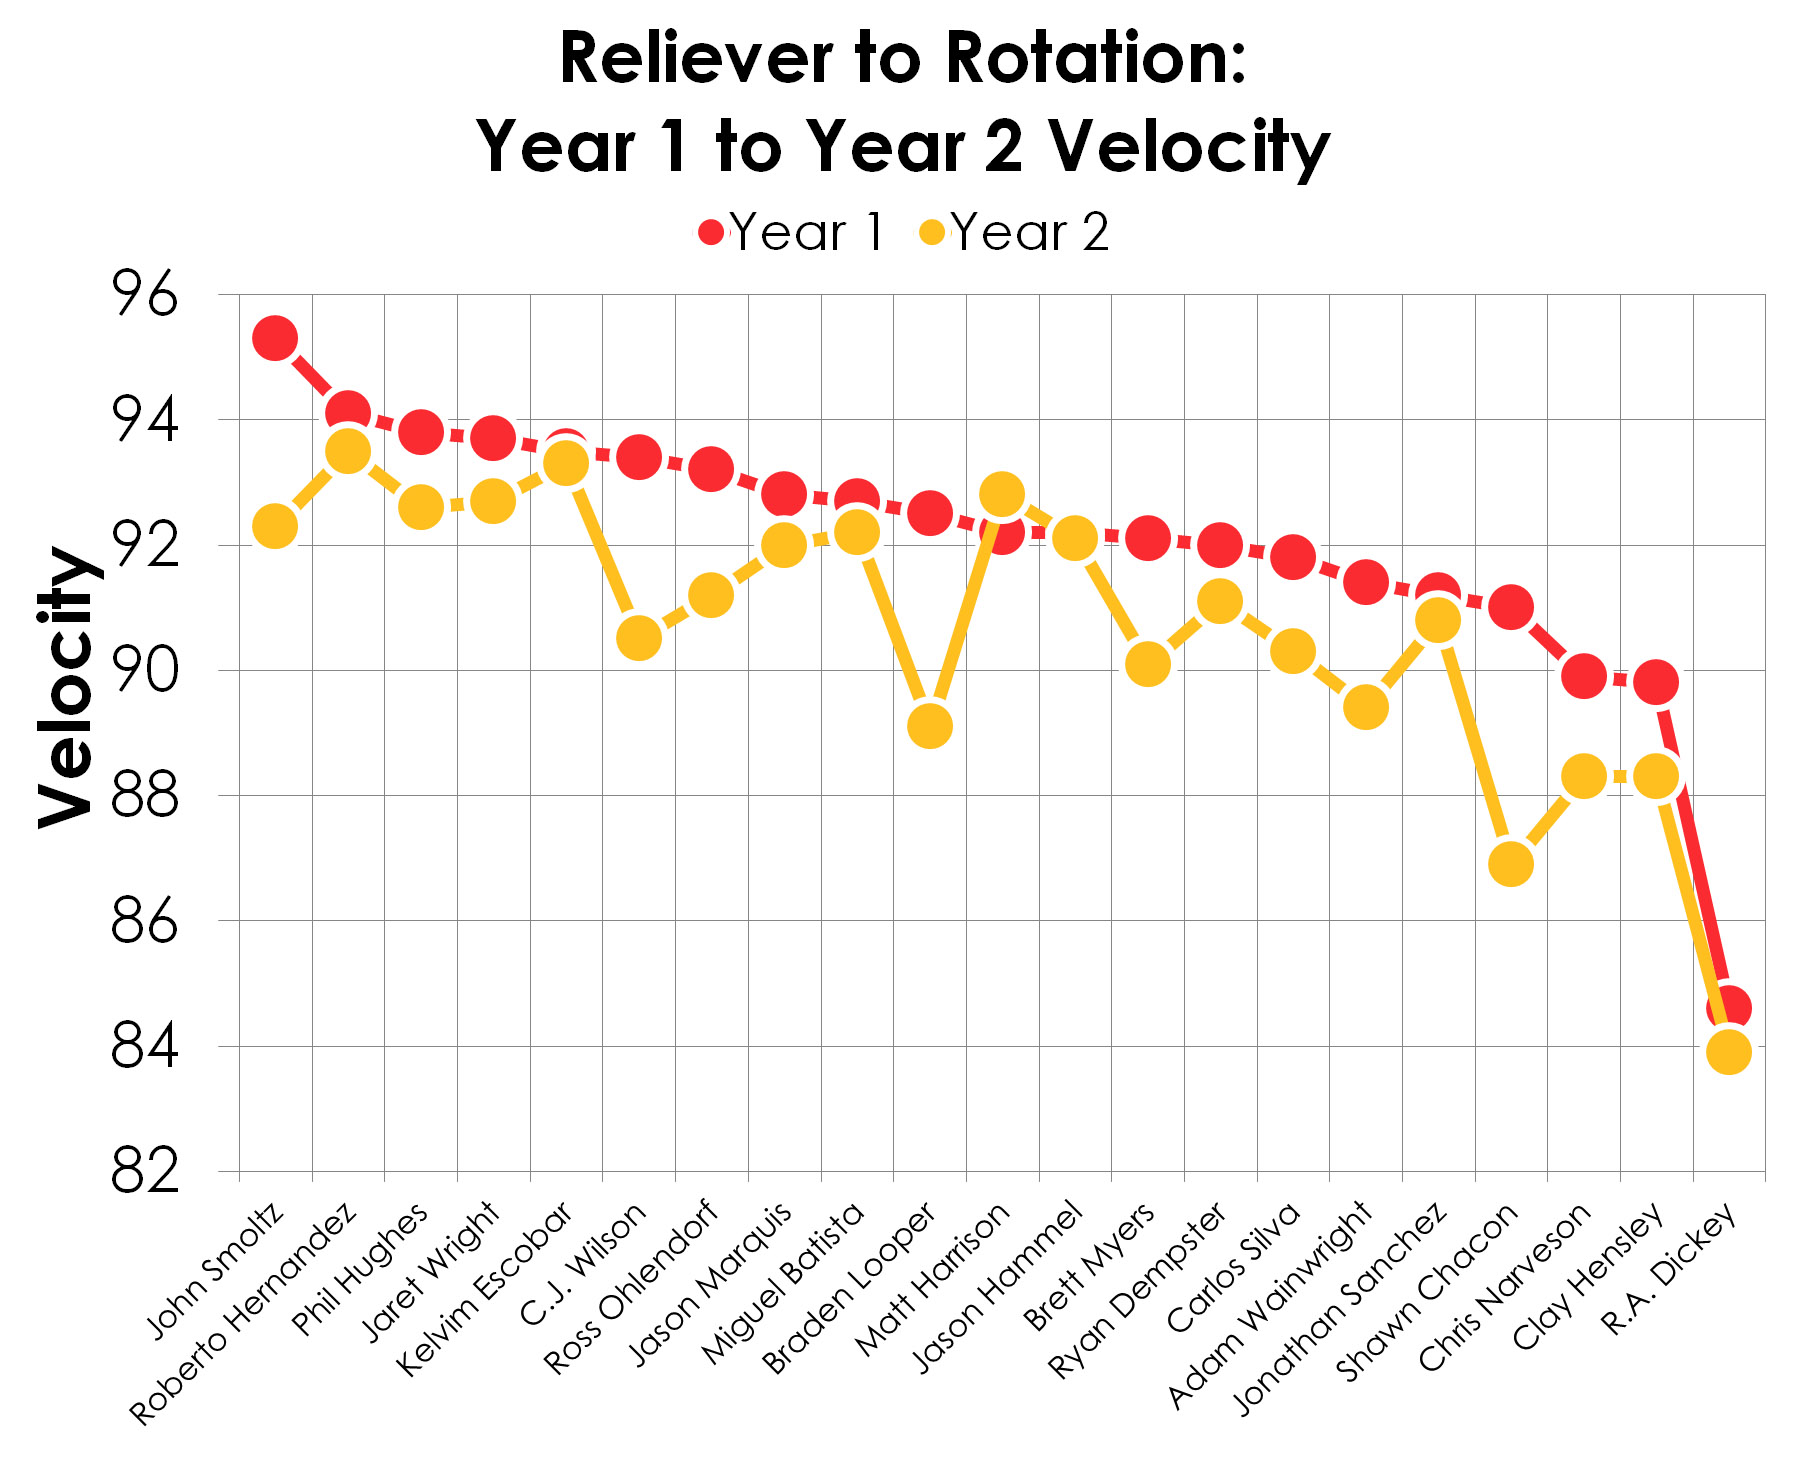 Velocity-change-reliever-rotation1_medium